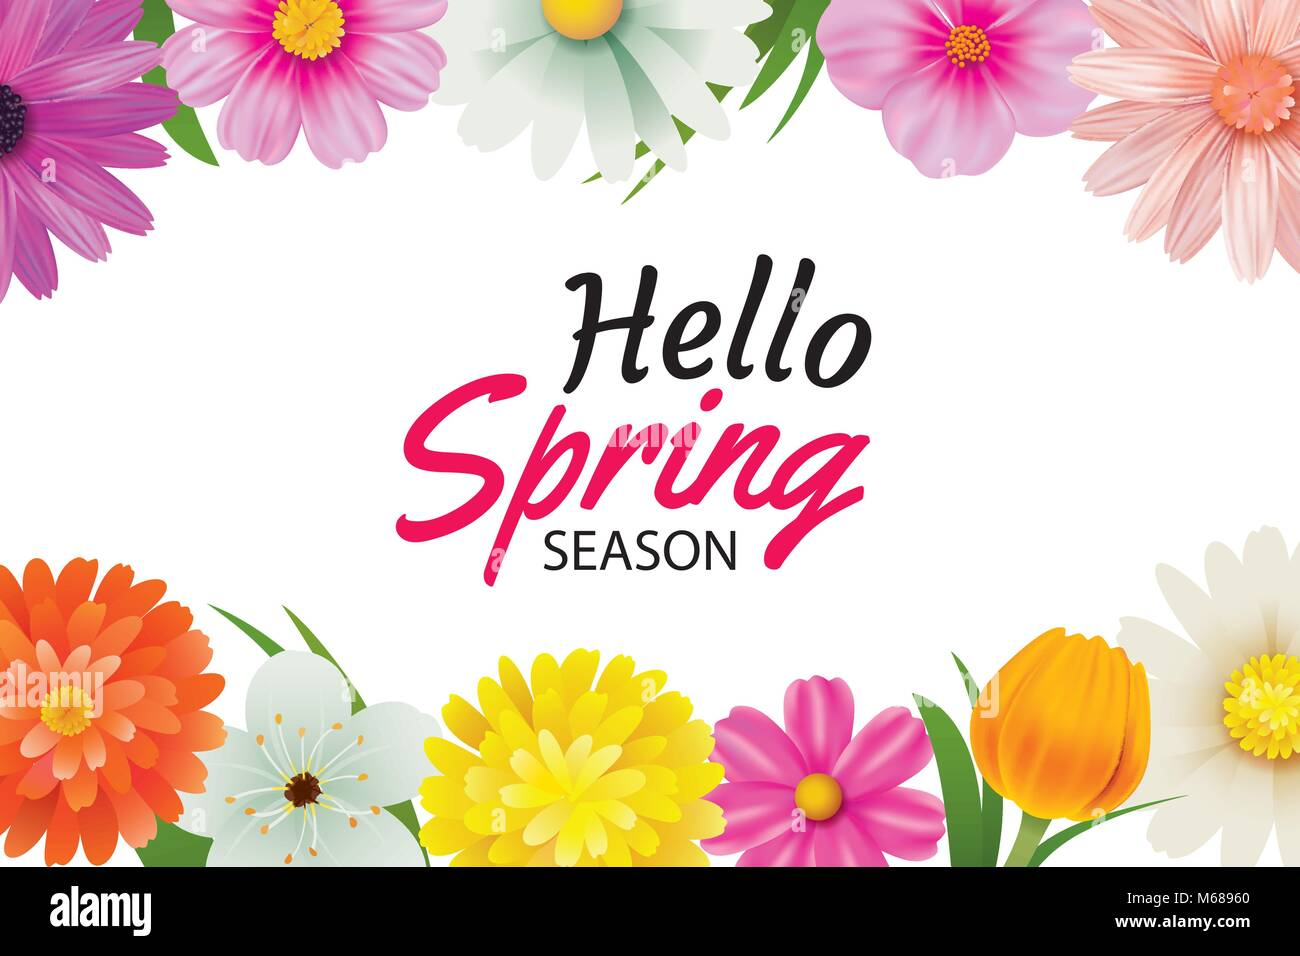 Hello Spring Season Greeting Card With Colorful Flower Frame Background Template Can Be Use Voucher Wallpaperflyers Invitation Posters Brochure